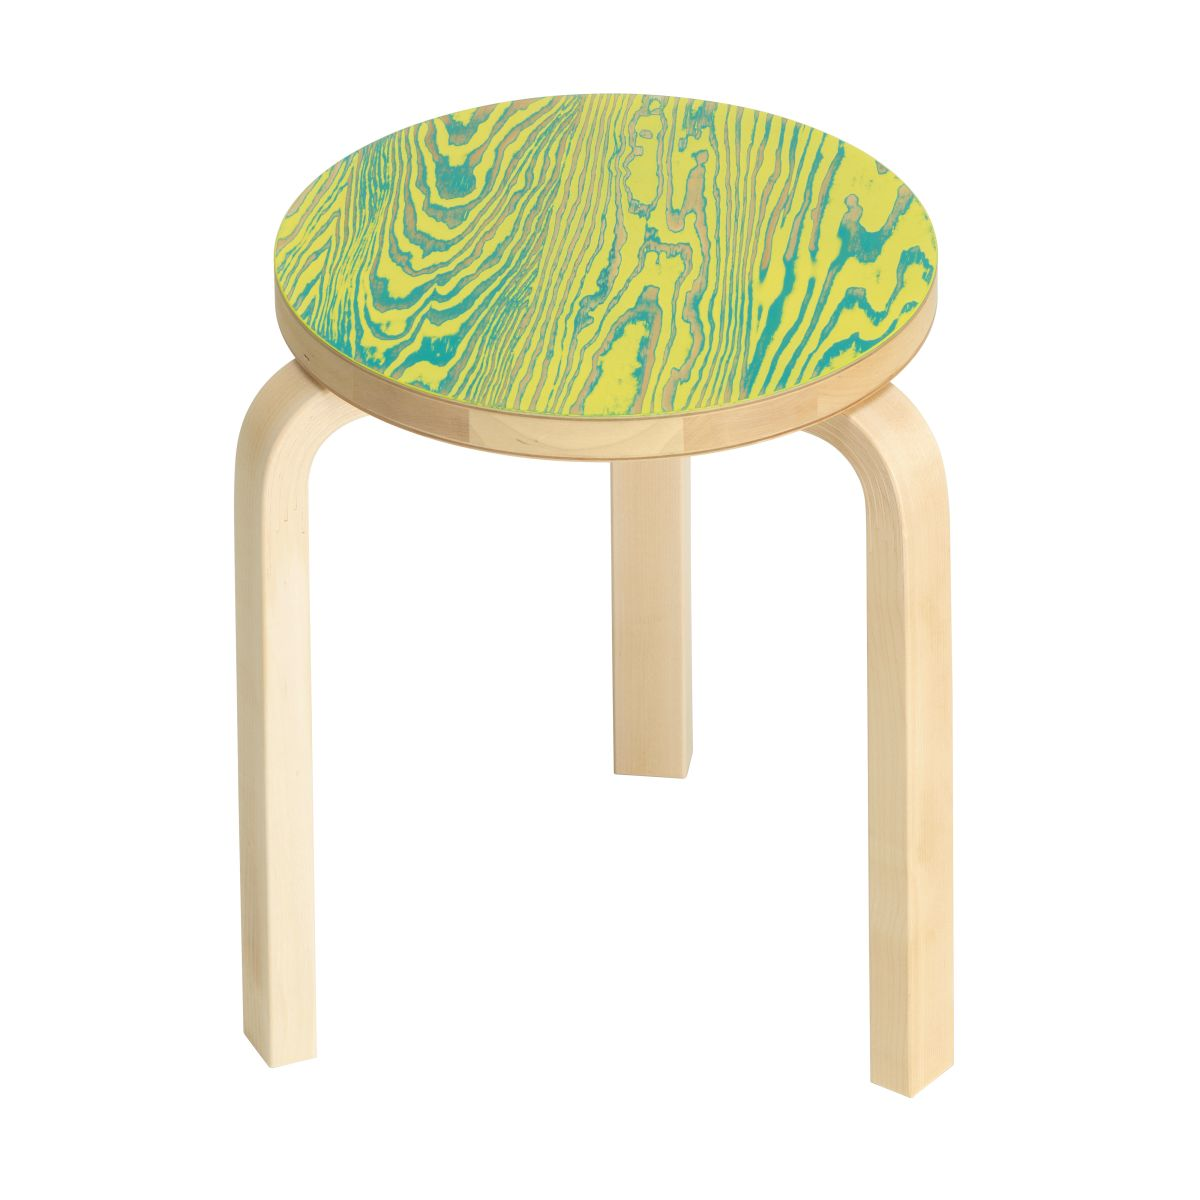 Stool-60-Colo Ring-green-yellow_F-2665070